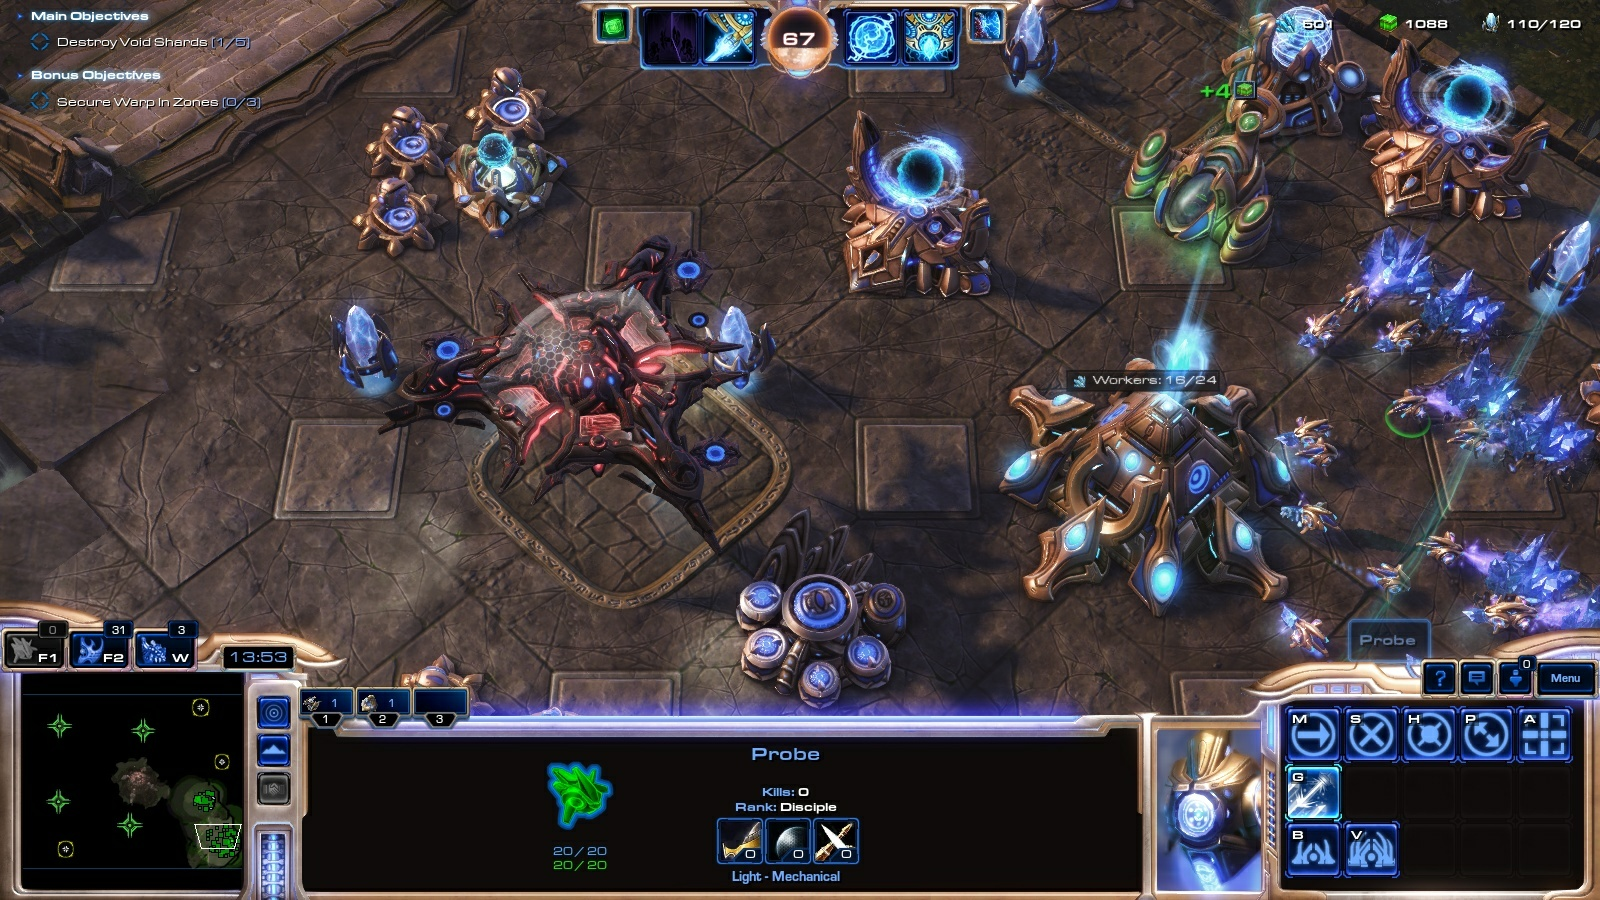 Not So Massively Starcraft Ii Has Quietly Become Blizzard S Best Managed Property Massively Overpowered